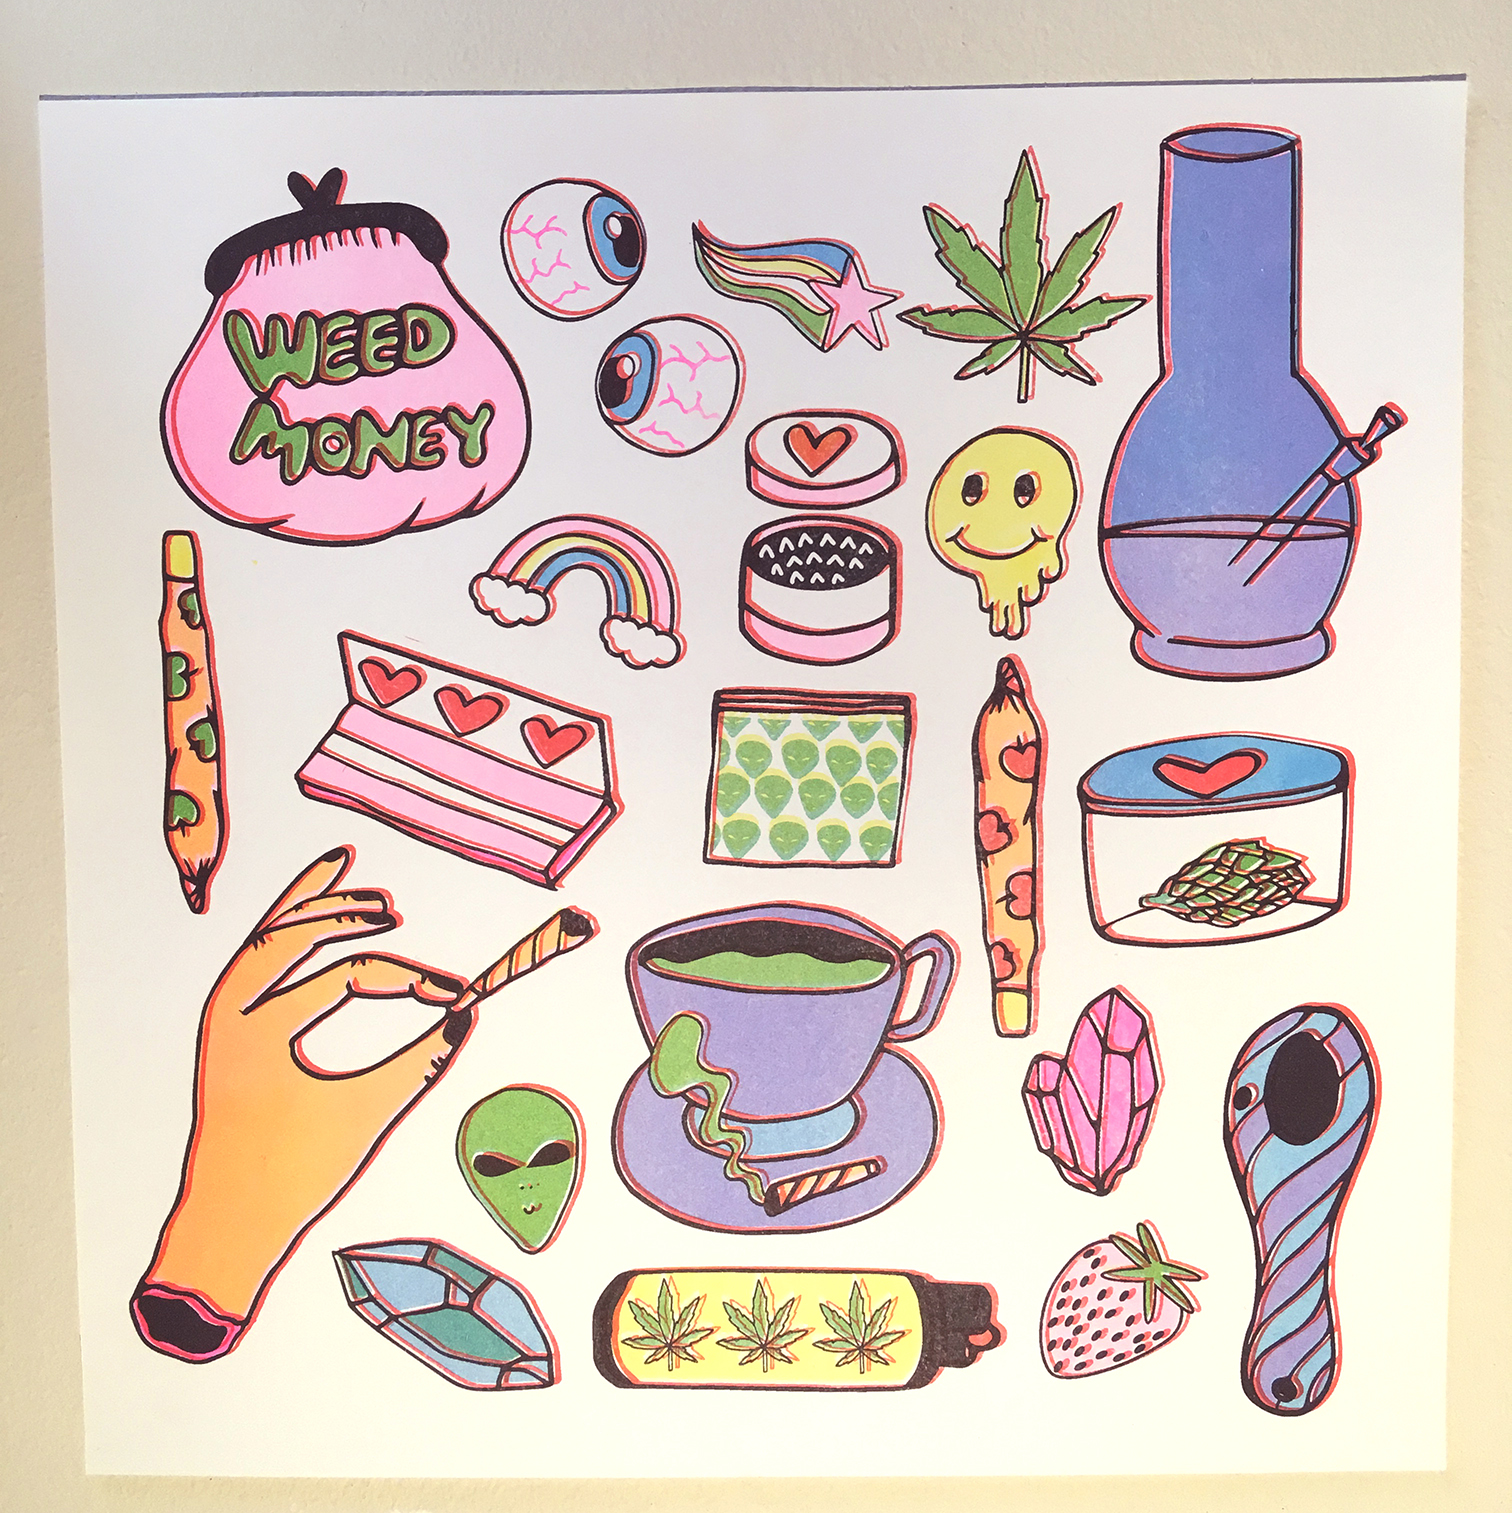 WEED MONEY RISO PRINT